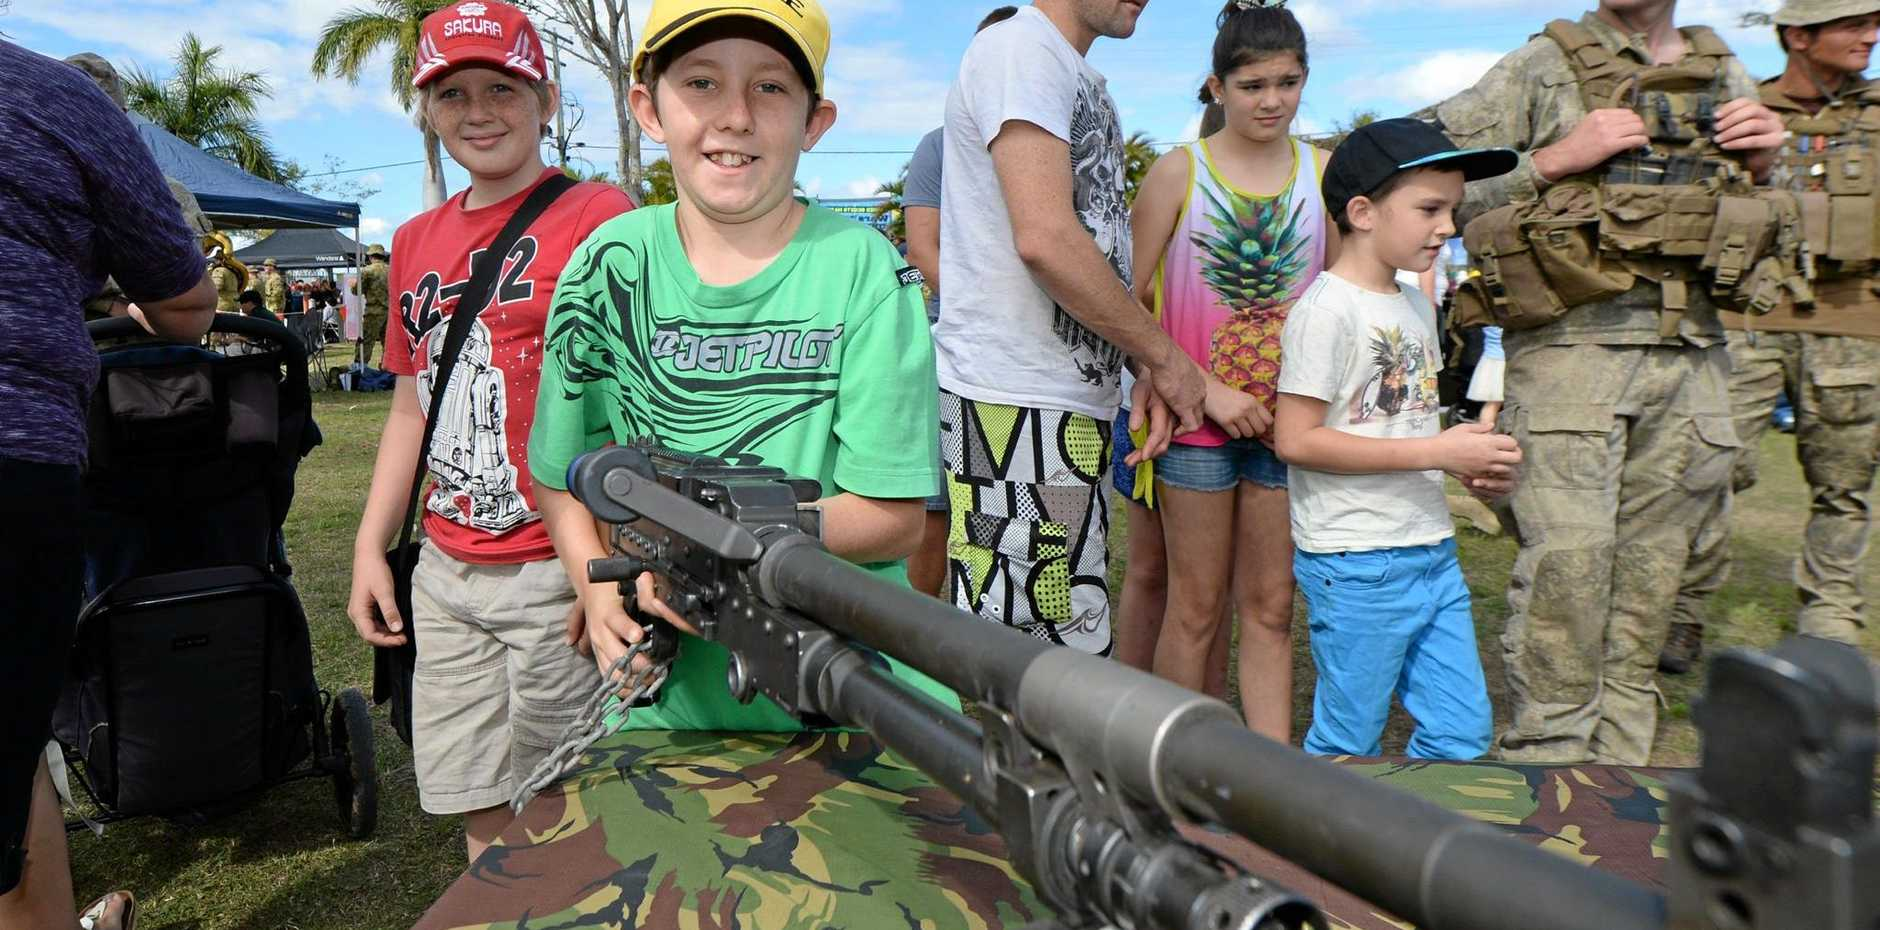 ON THE RADAR: Noel Jenkins (11) at the Talisman Sabre Open day in 2015.